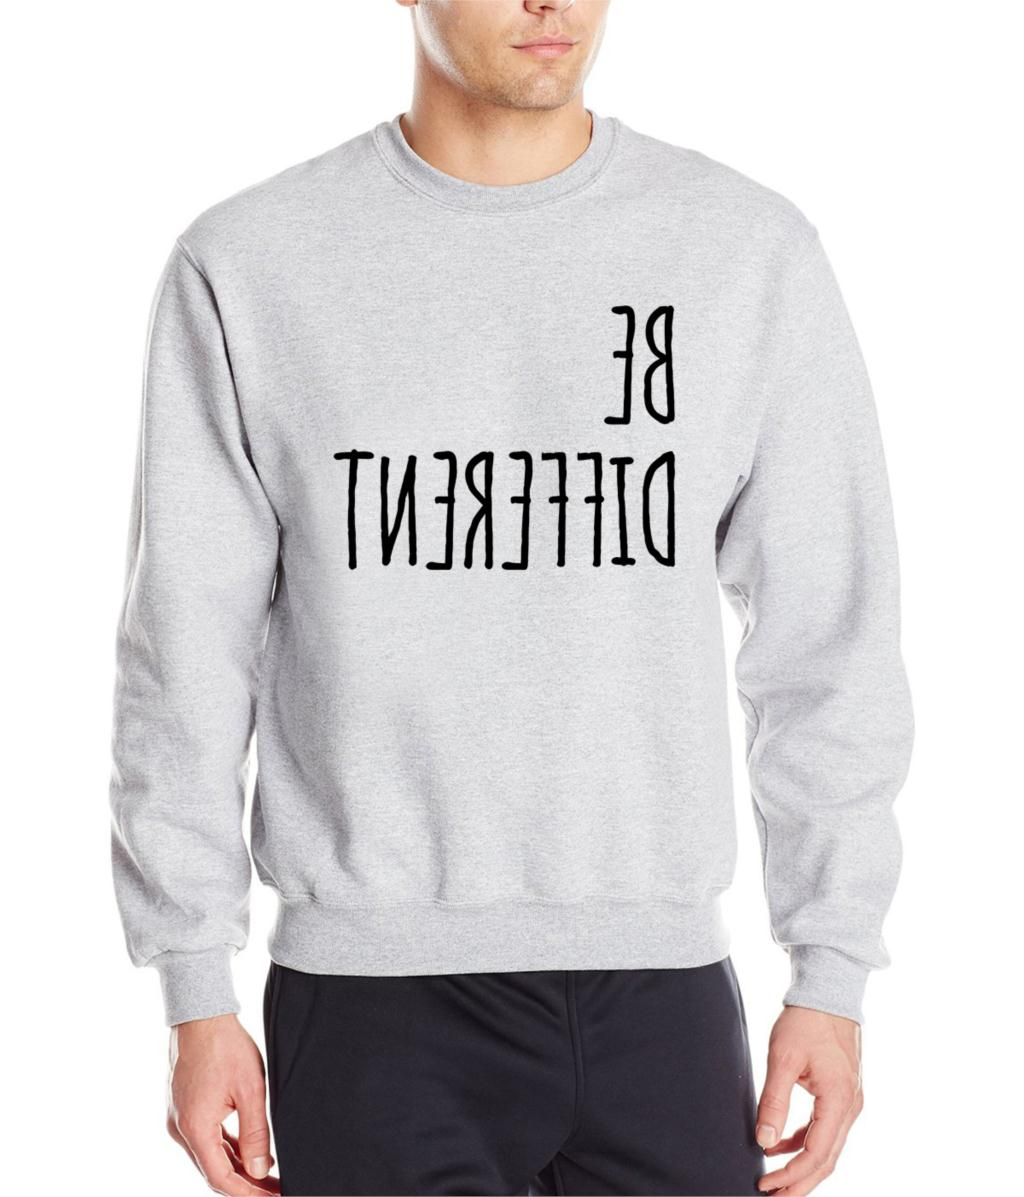 HTB15shZPVXXXXblXVXXq6xXFXXXY - Be Different novelty hoodies men 2019 new style spring winter fashion men sweatshirt hip hop style streetwear brand tracksuit